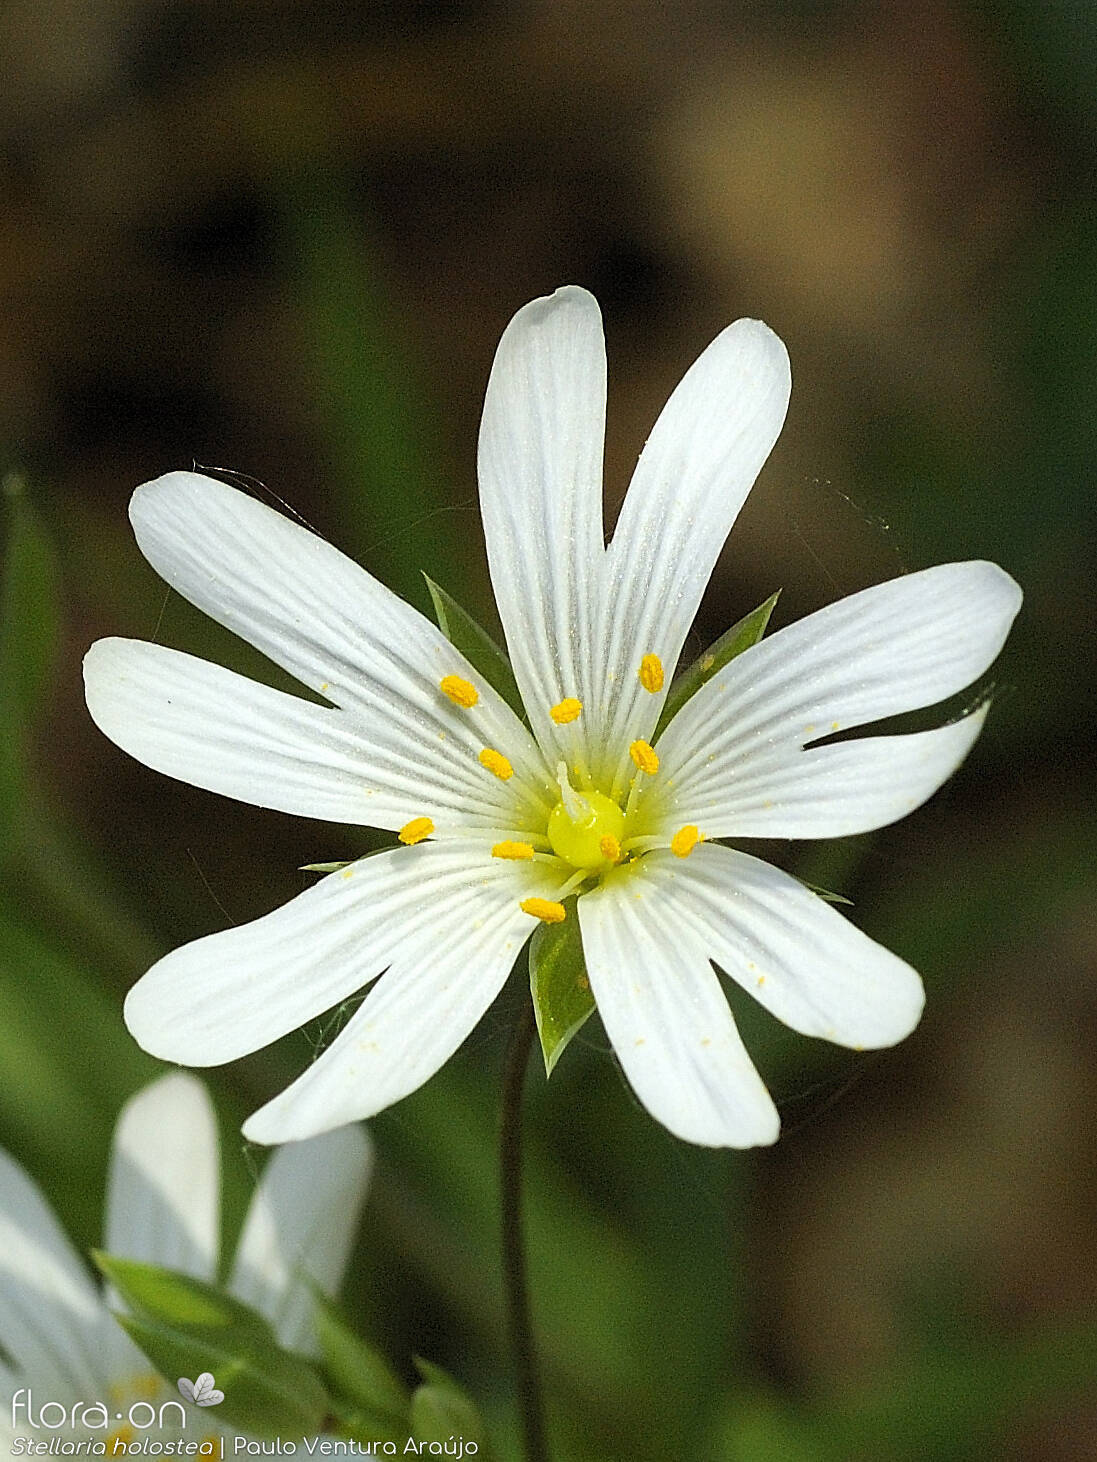 Stellaria holostea - Flor (close-up) | Paulo Ventura Araújo; CC BY-NC 4.0